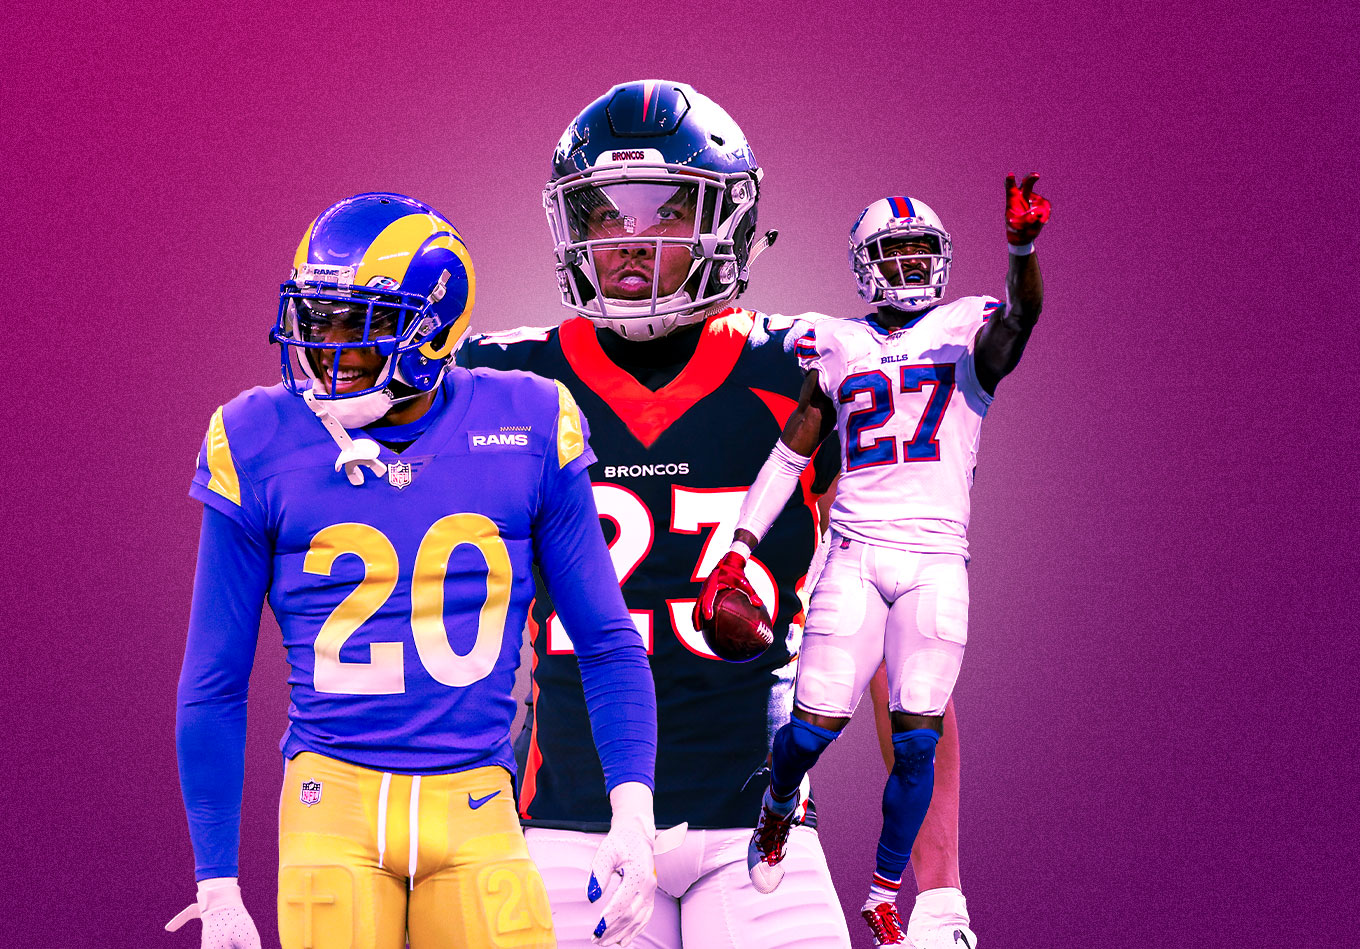 NFL Positional Rankings: The Best, Worst, and Most Improved Secondaries